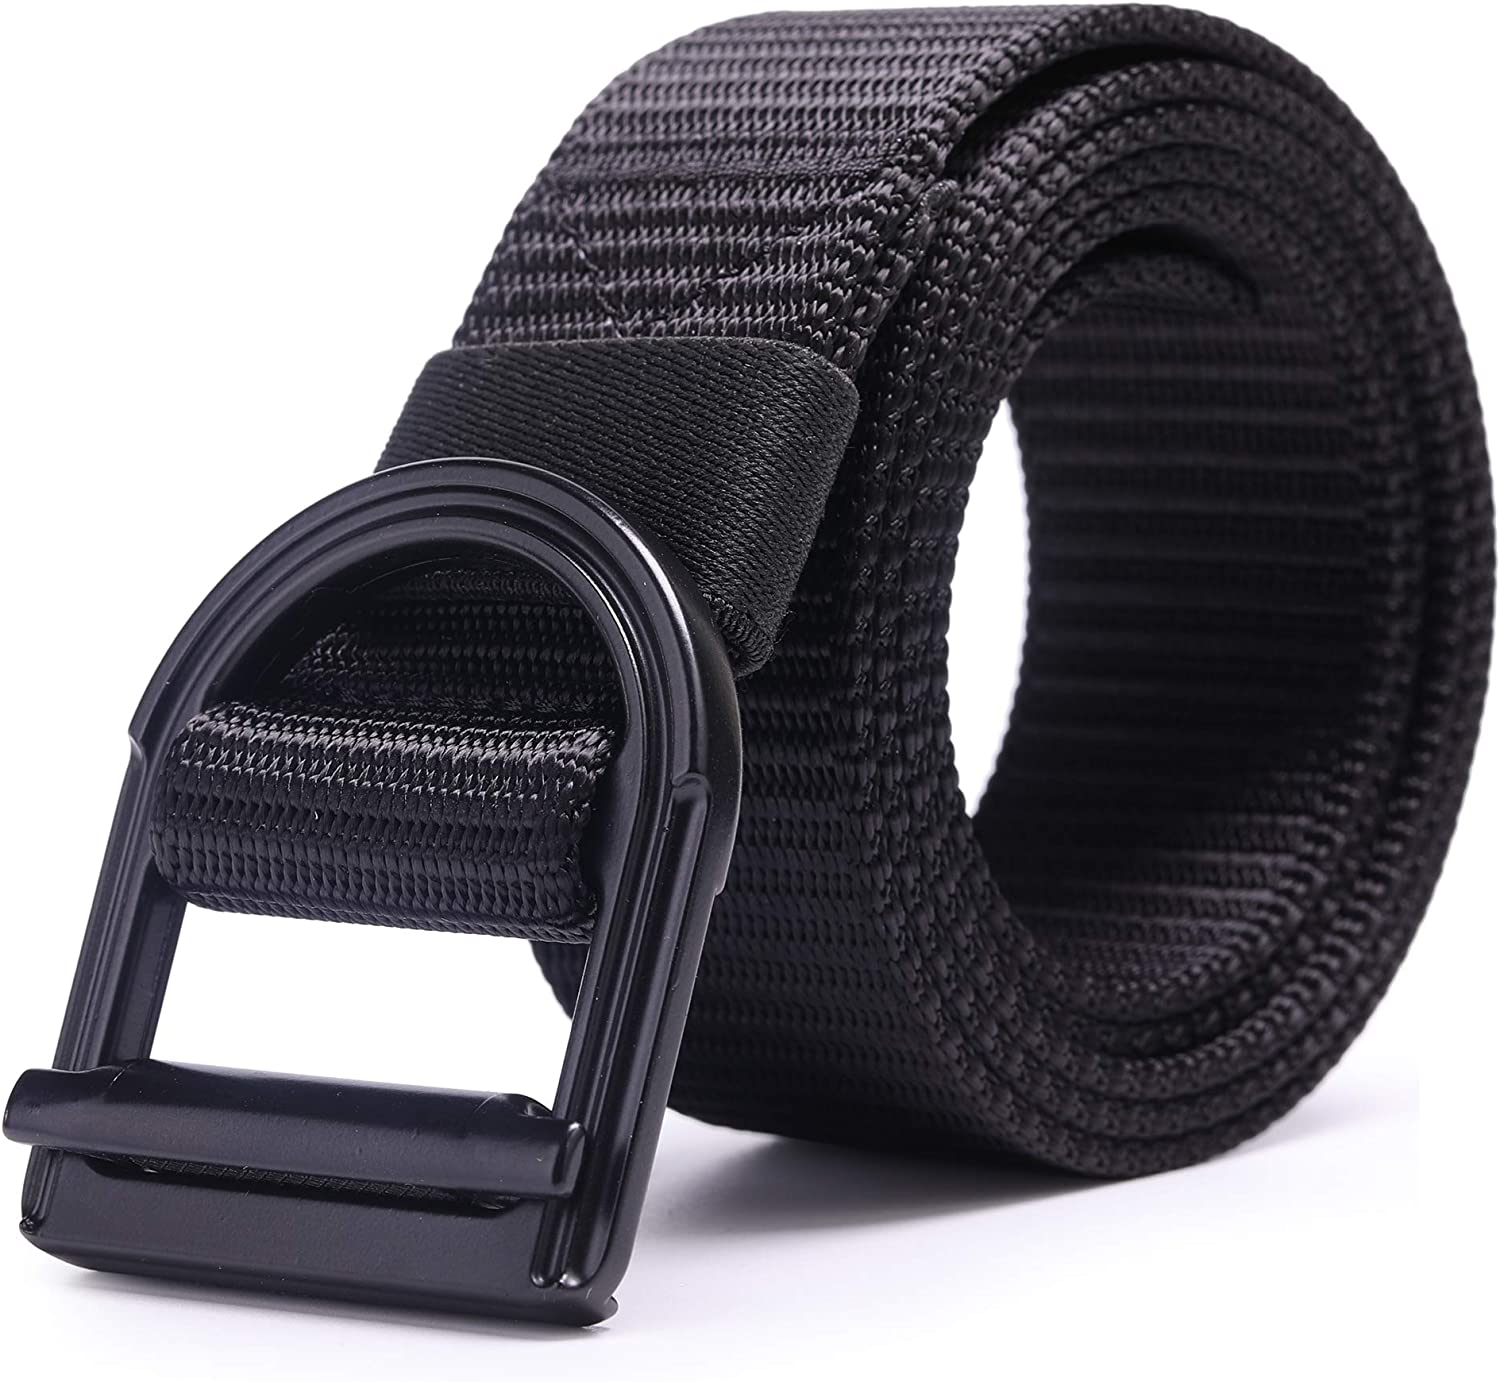 AXBXCX Mens Tactical Belt 1.5 Nylon Military Style Casual Army Outdoor Tactical Webbing Metal Buckle Belt